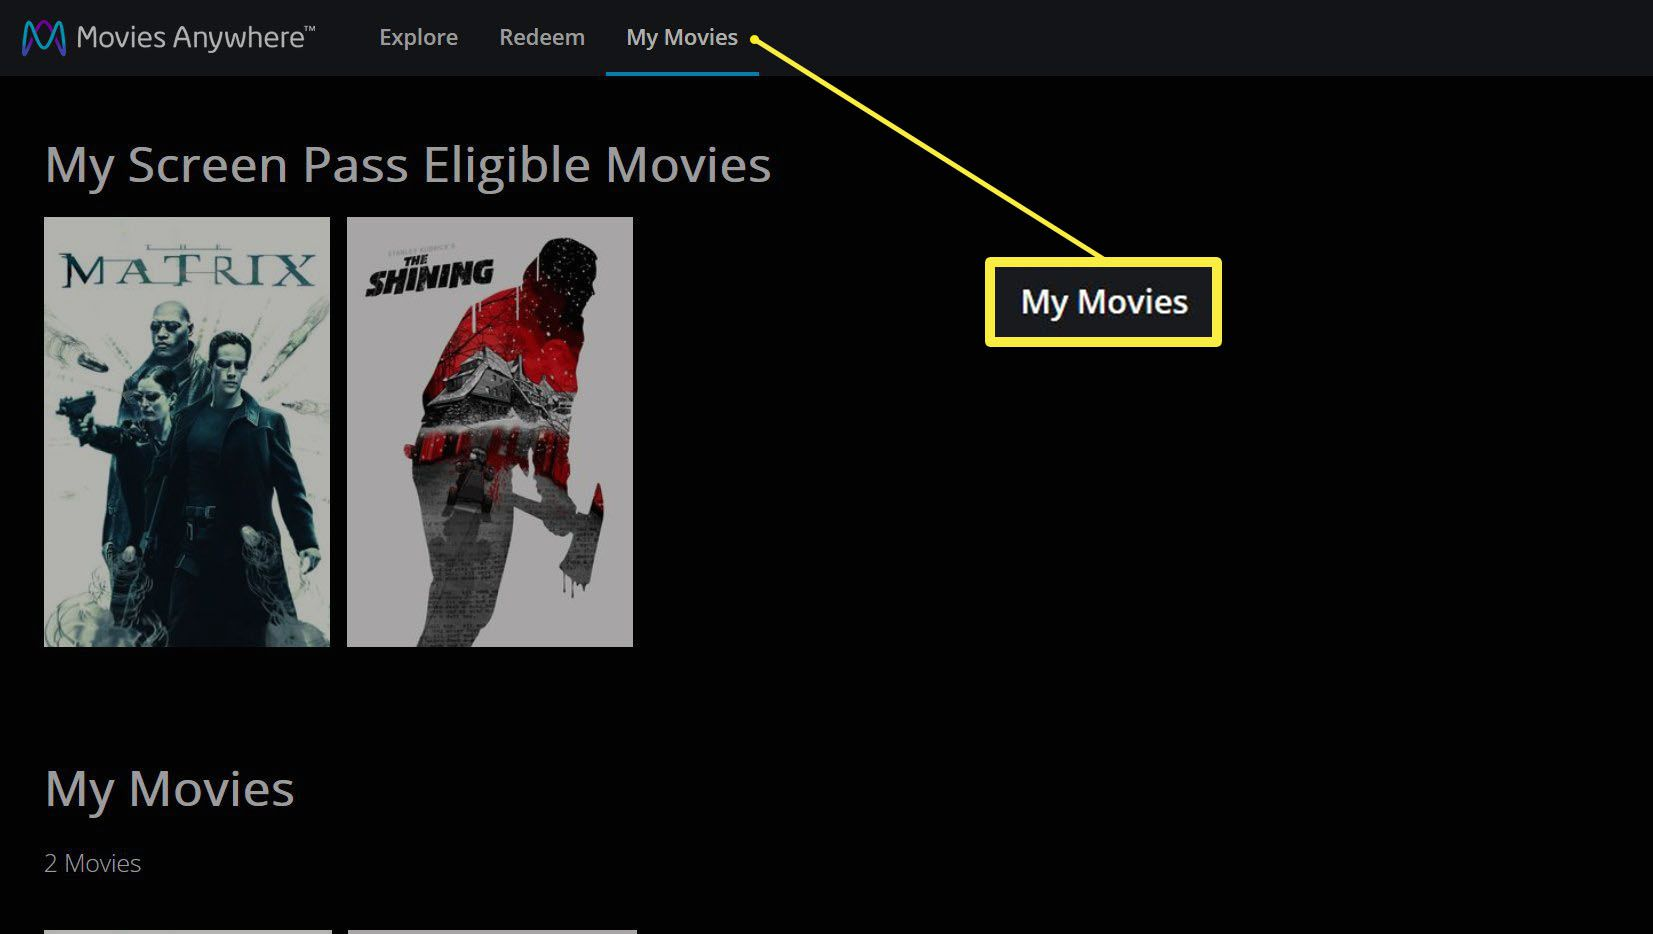 The Movies Anywhere site with the My Movies button highlighted.